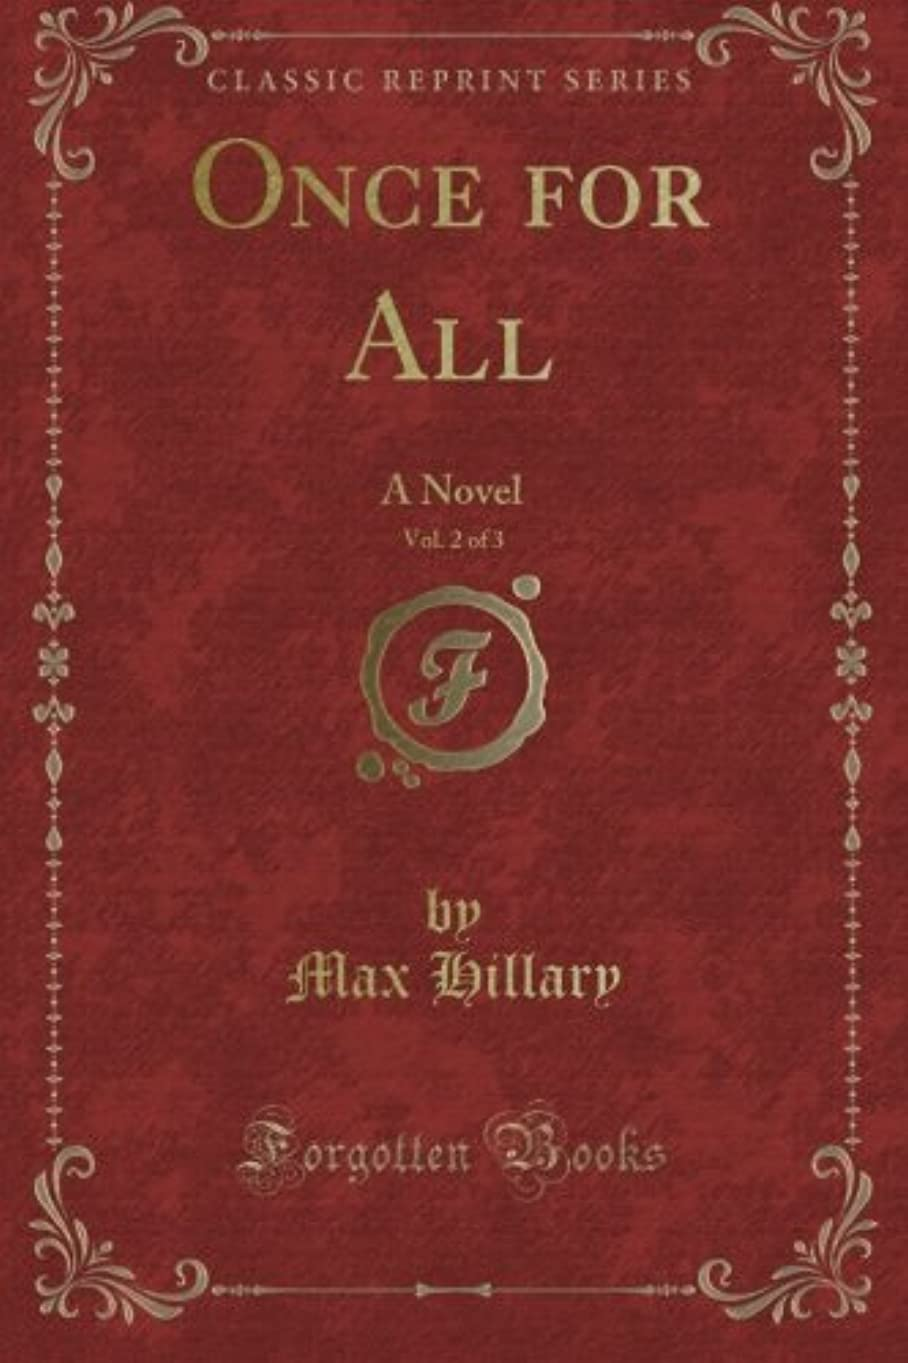 コウモリ愚かな保存Once for All: A Novel, Vol. 2 of 3 (Classic Reprint)